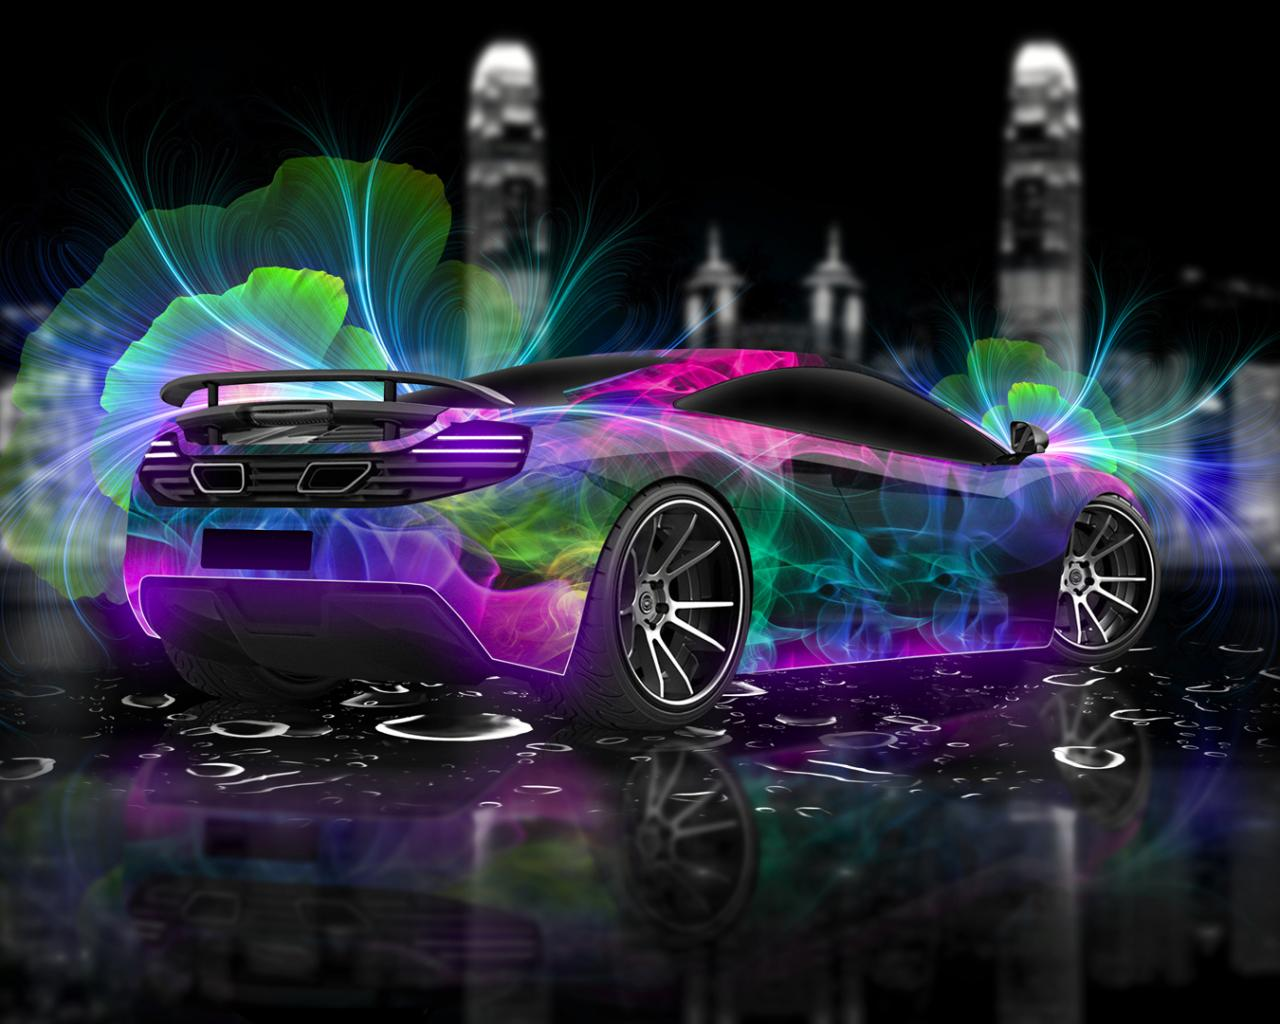 Free Download Cool Car Wallpapers 1280x1024 For Your Desktop Mobile Tablet Explore 78 Cool Wallpapers Cars Beautiful Hd Wallpapers For Desktop Free Car Wallpapers For Desktop Cool Wallpapers